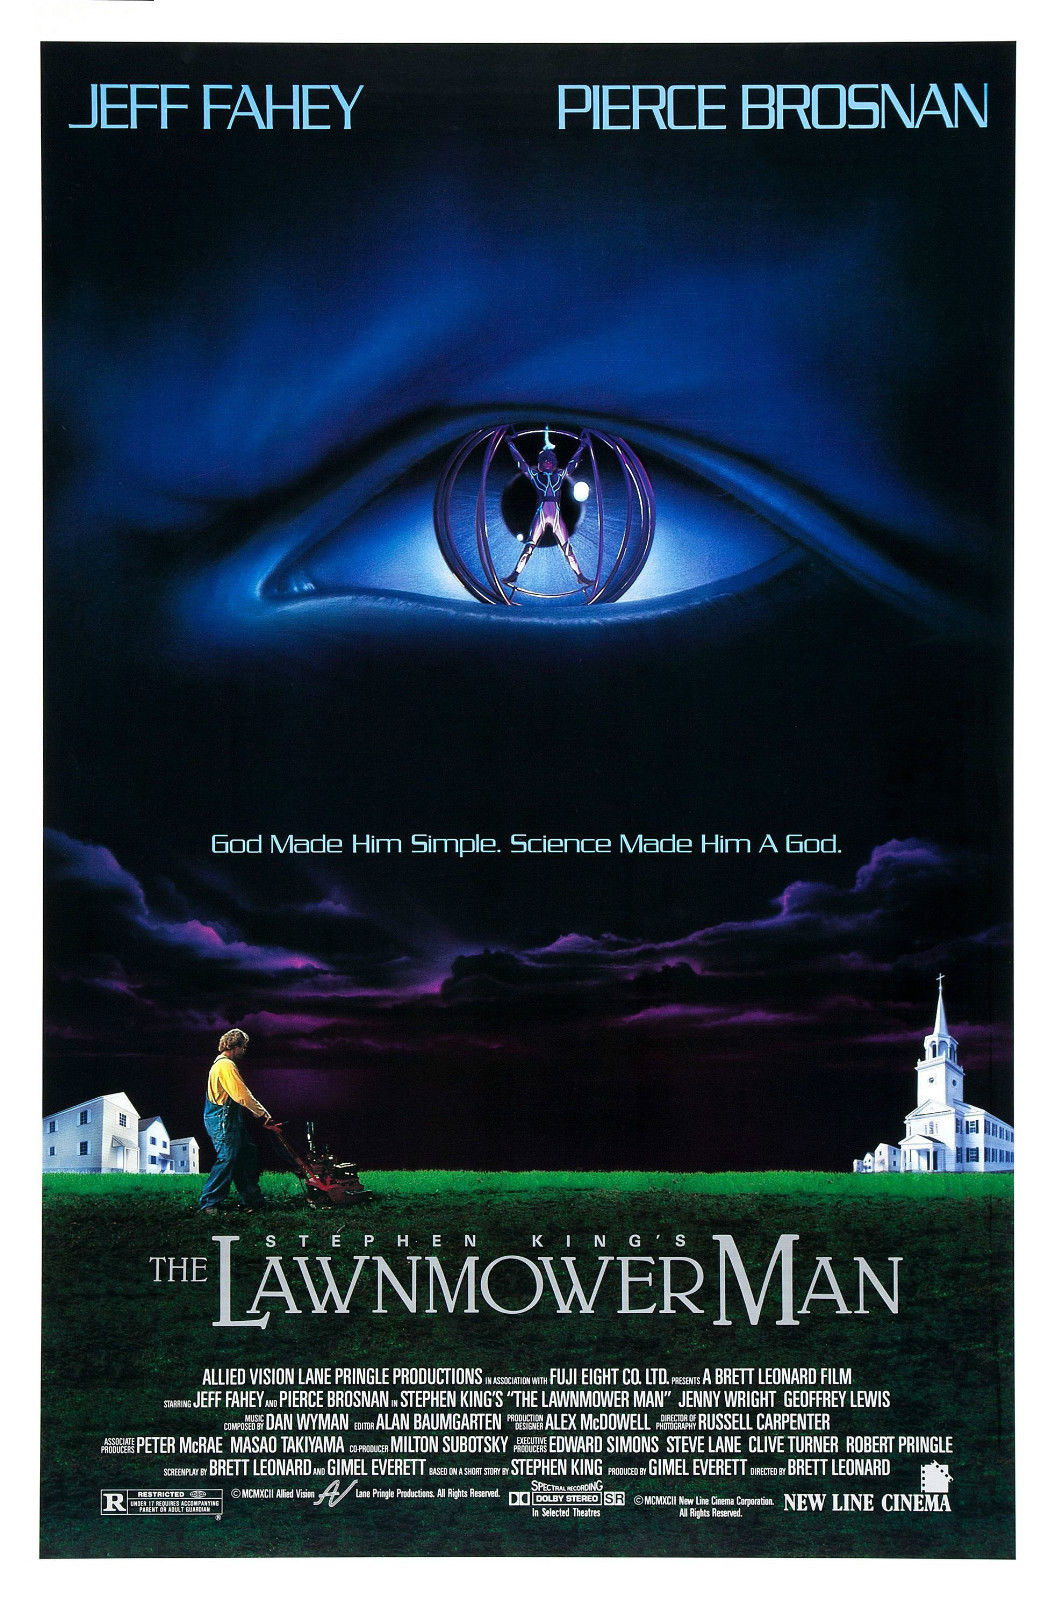 73458 LAWNMOWER MAN Movie Horror Sci-Fi Decor Decor Decor Wall Print Poster 44172a